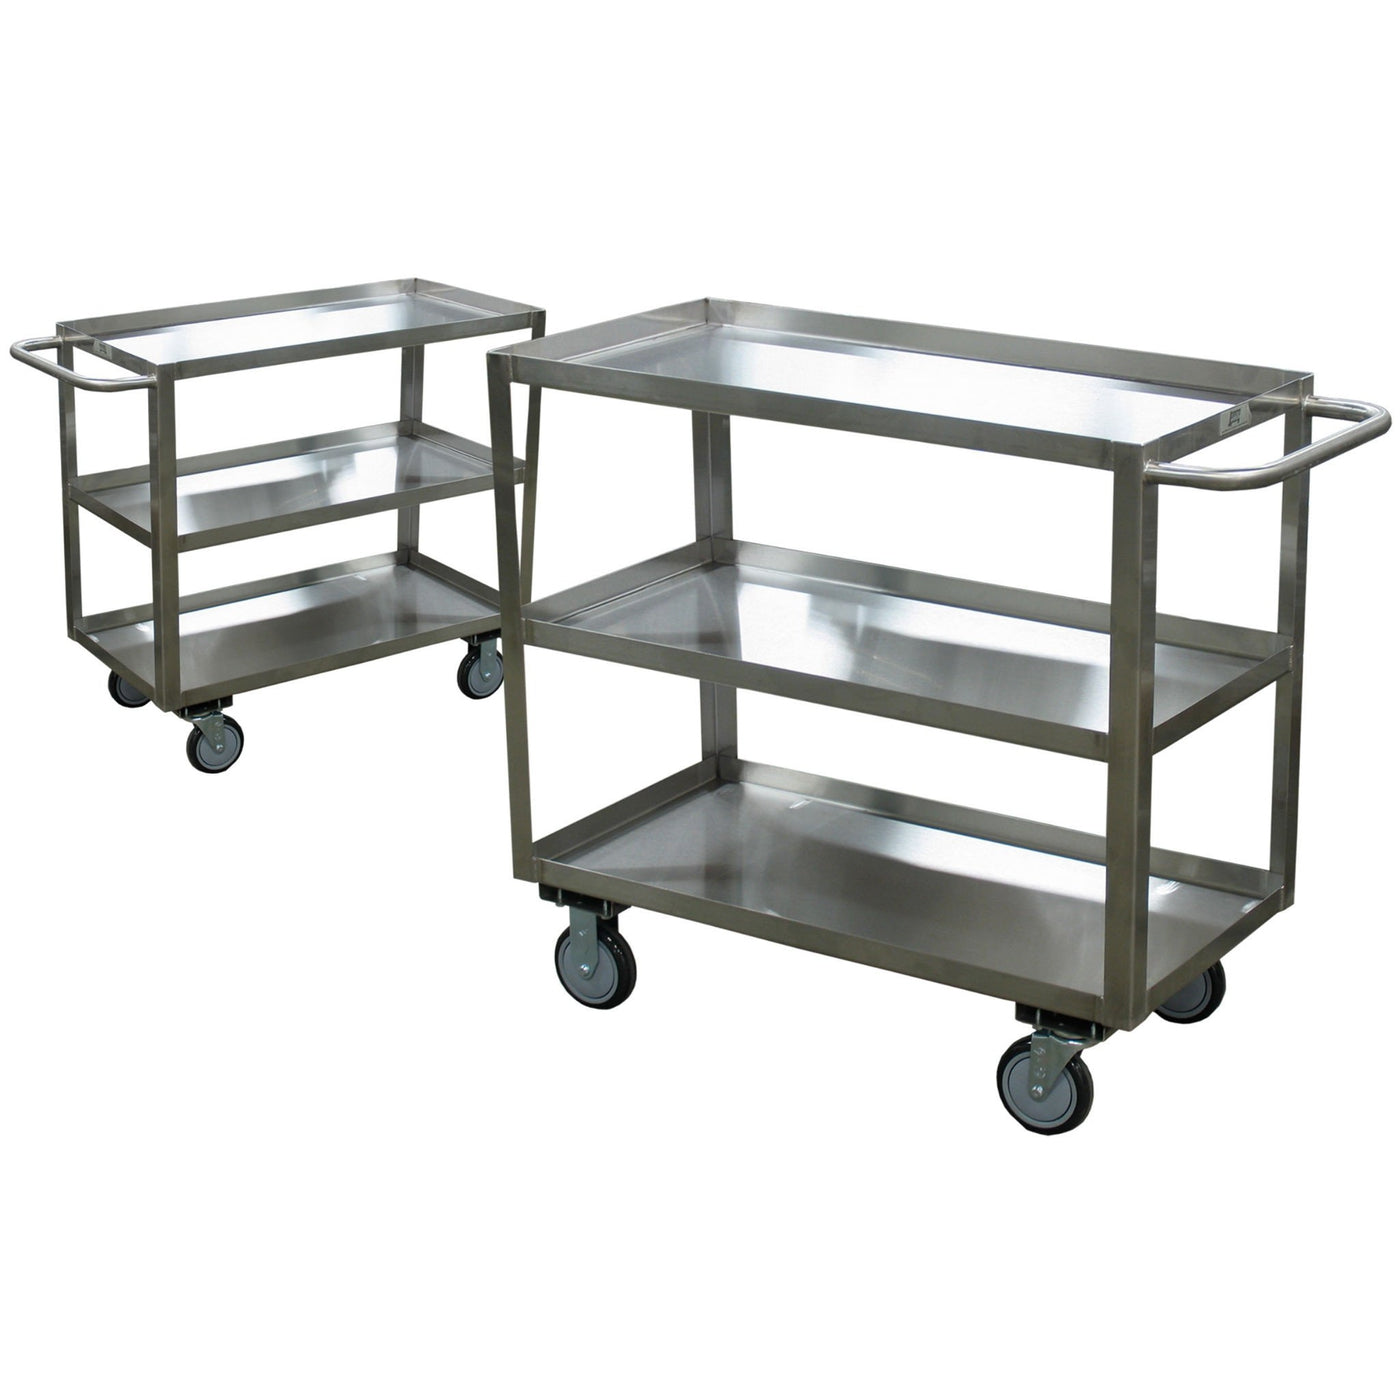 Stainless Steel Utility Carts-Laboratory Accessory-Mortech Manufacturing Company Inc. Quality Stainless Steel Autopsy, Morgue, Funeral Home, Necropsy, Veterinary / Anatomy, Dissection Equipment and Accessories